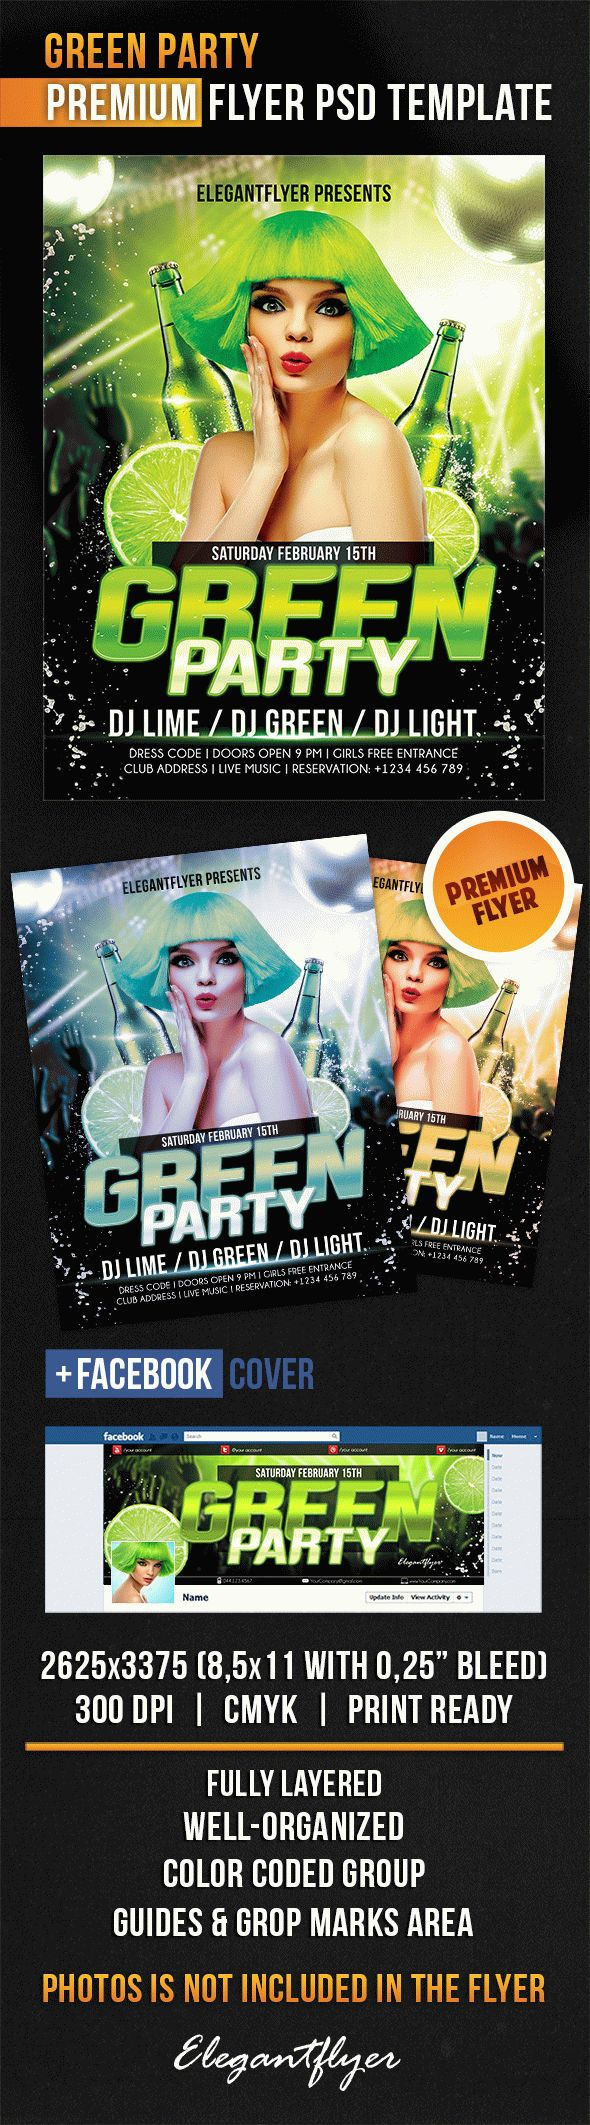 Green Wigs Party City Template